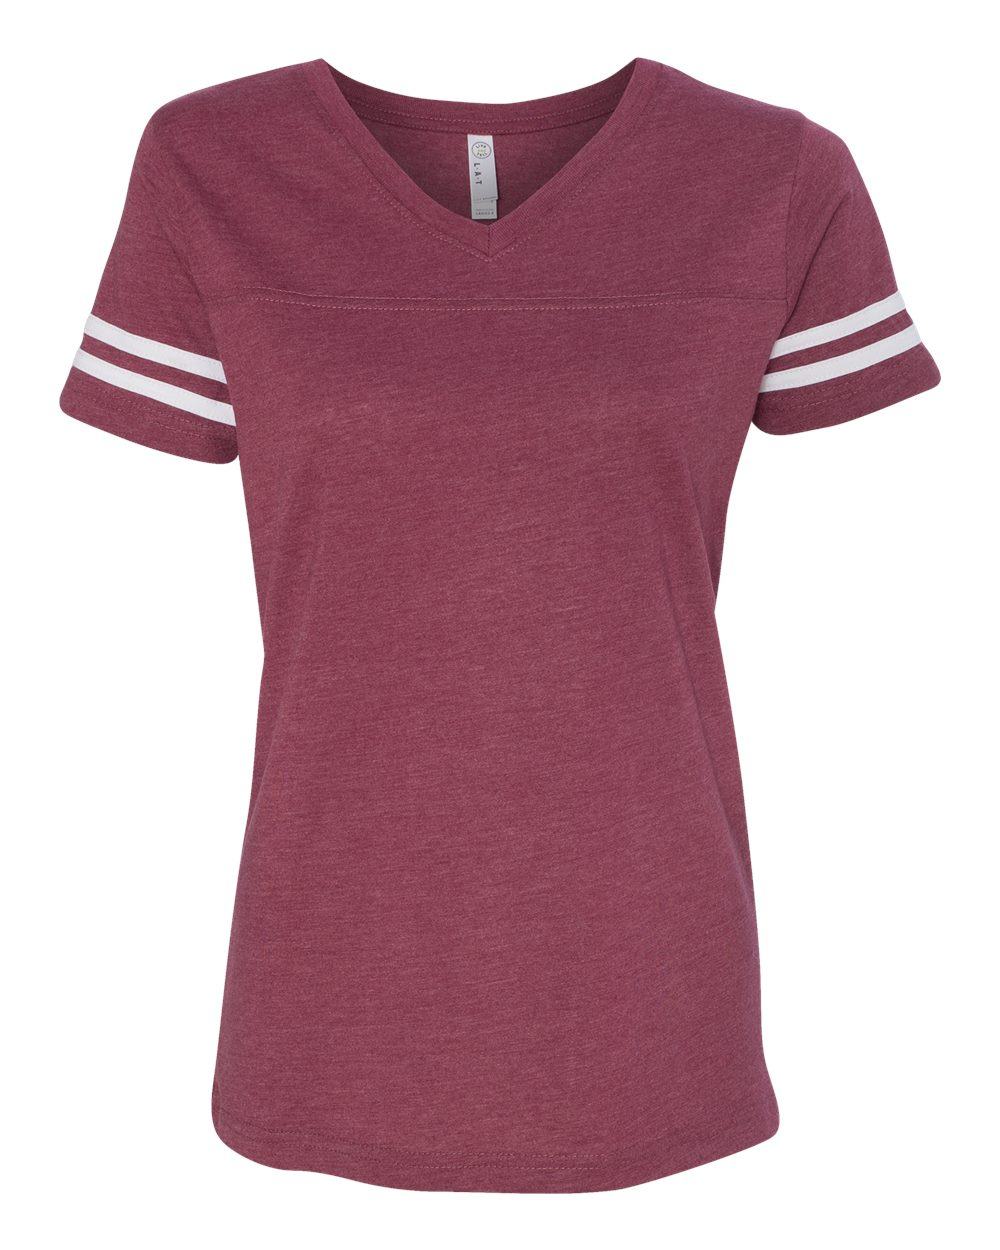 click to view Vintage Burgundy/White